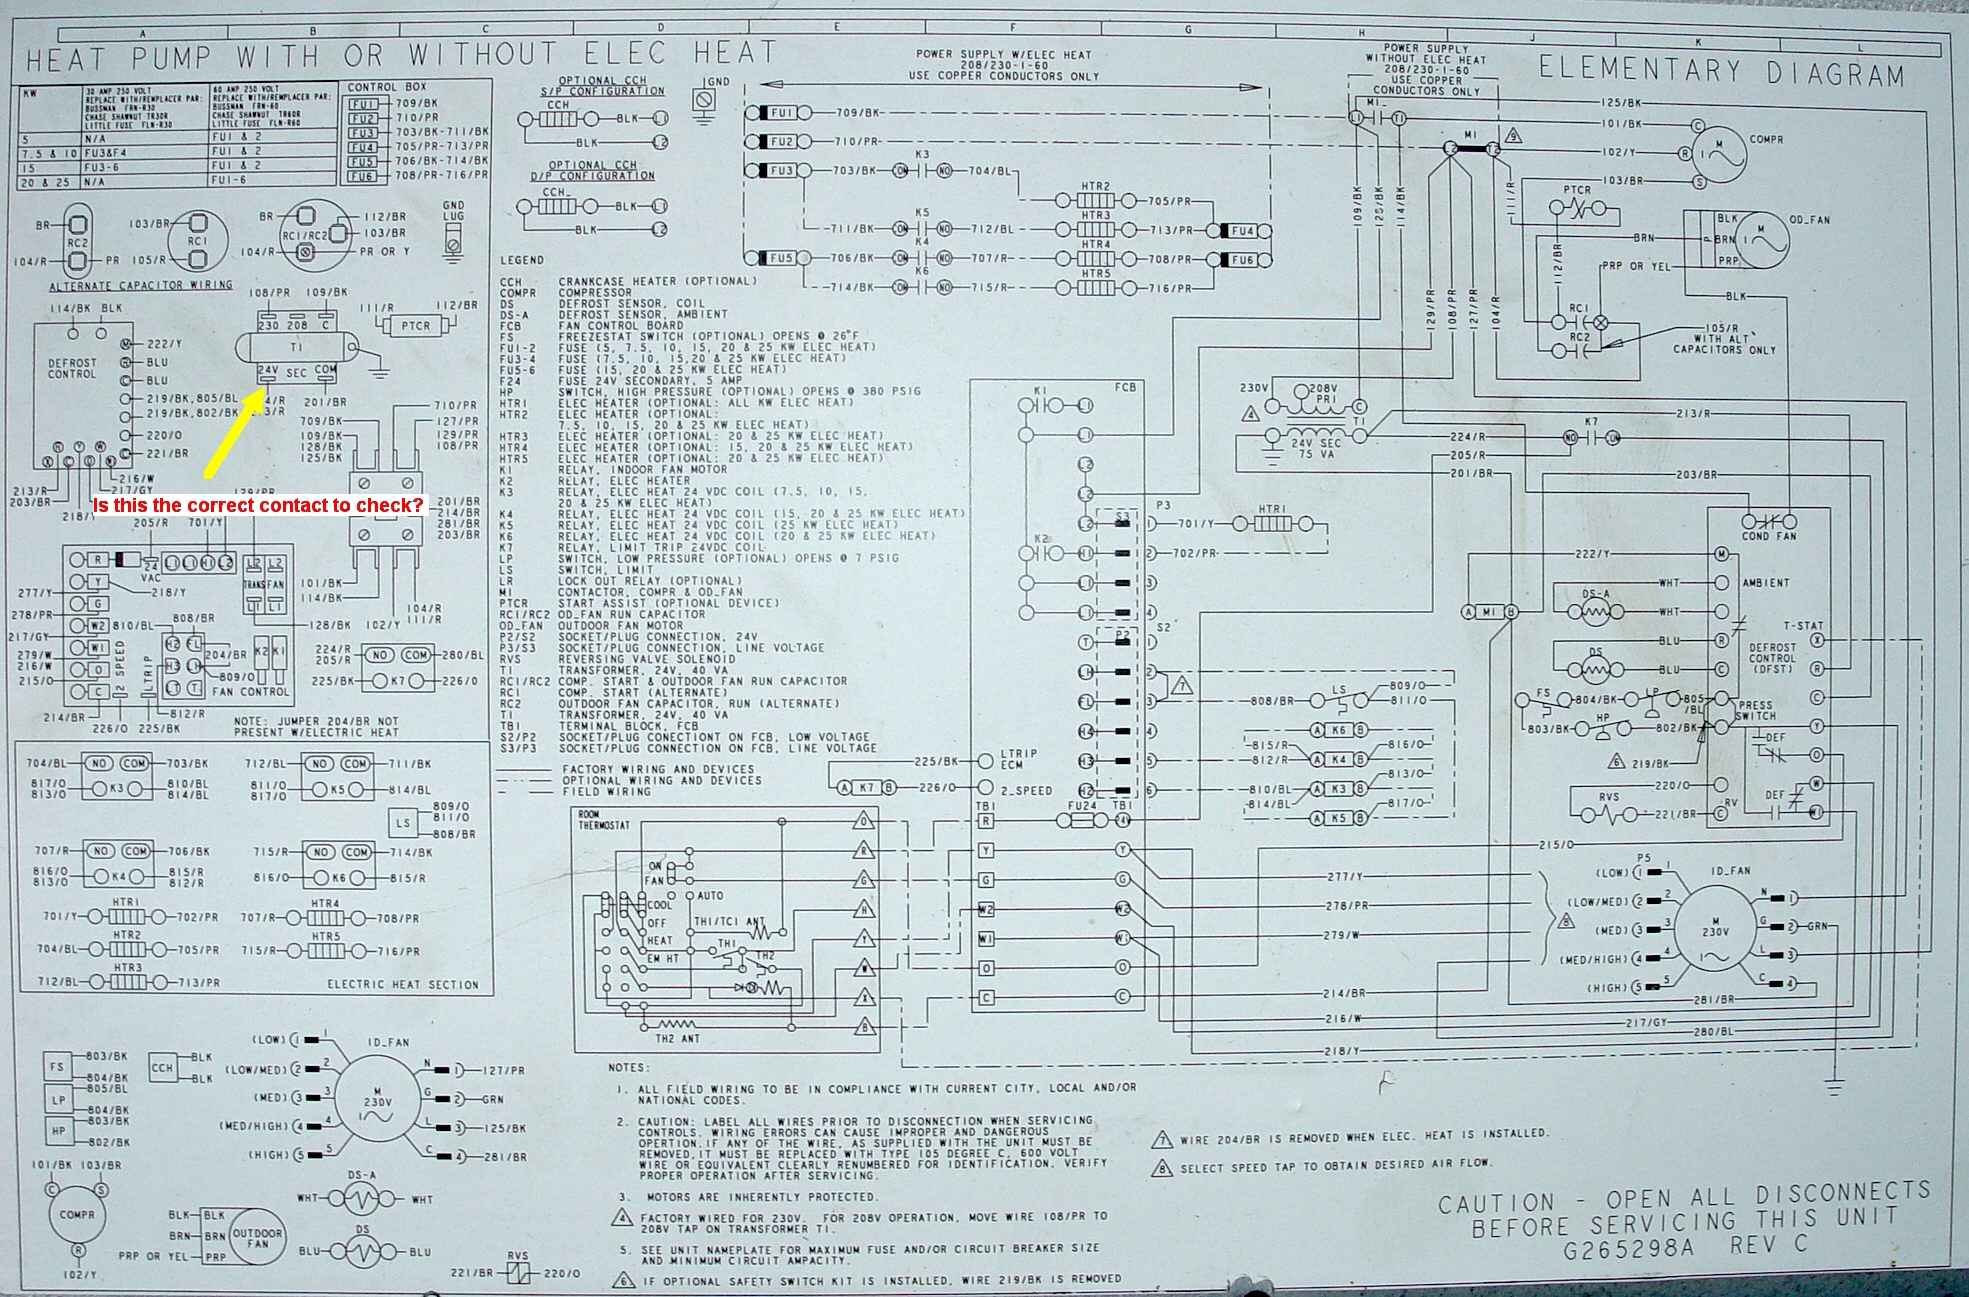 York defrost board wiring diagram free engine image